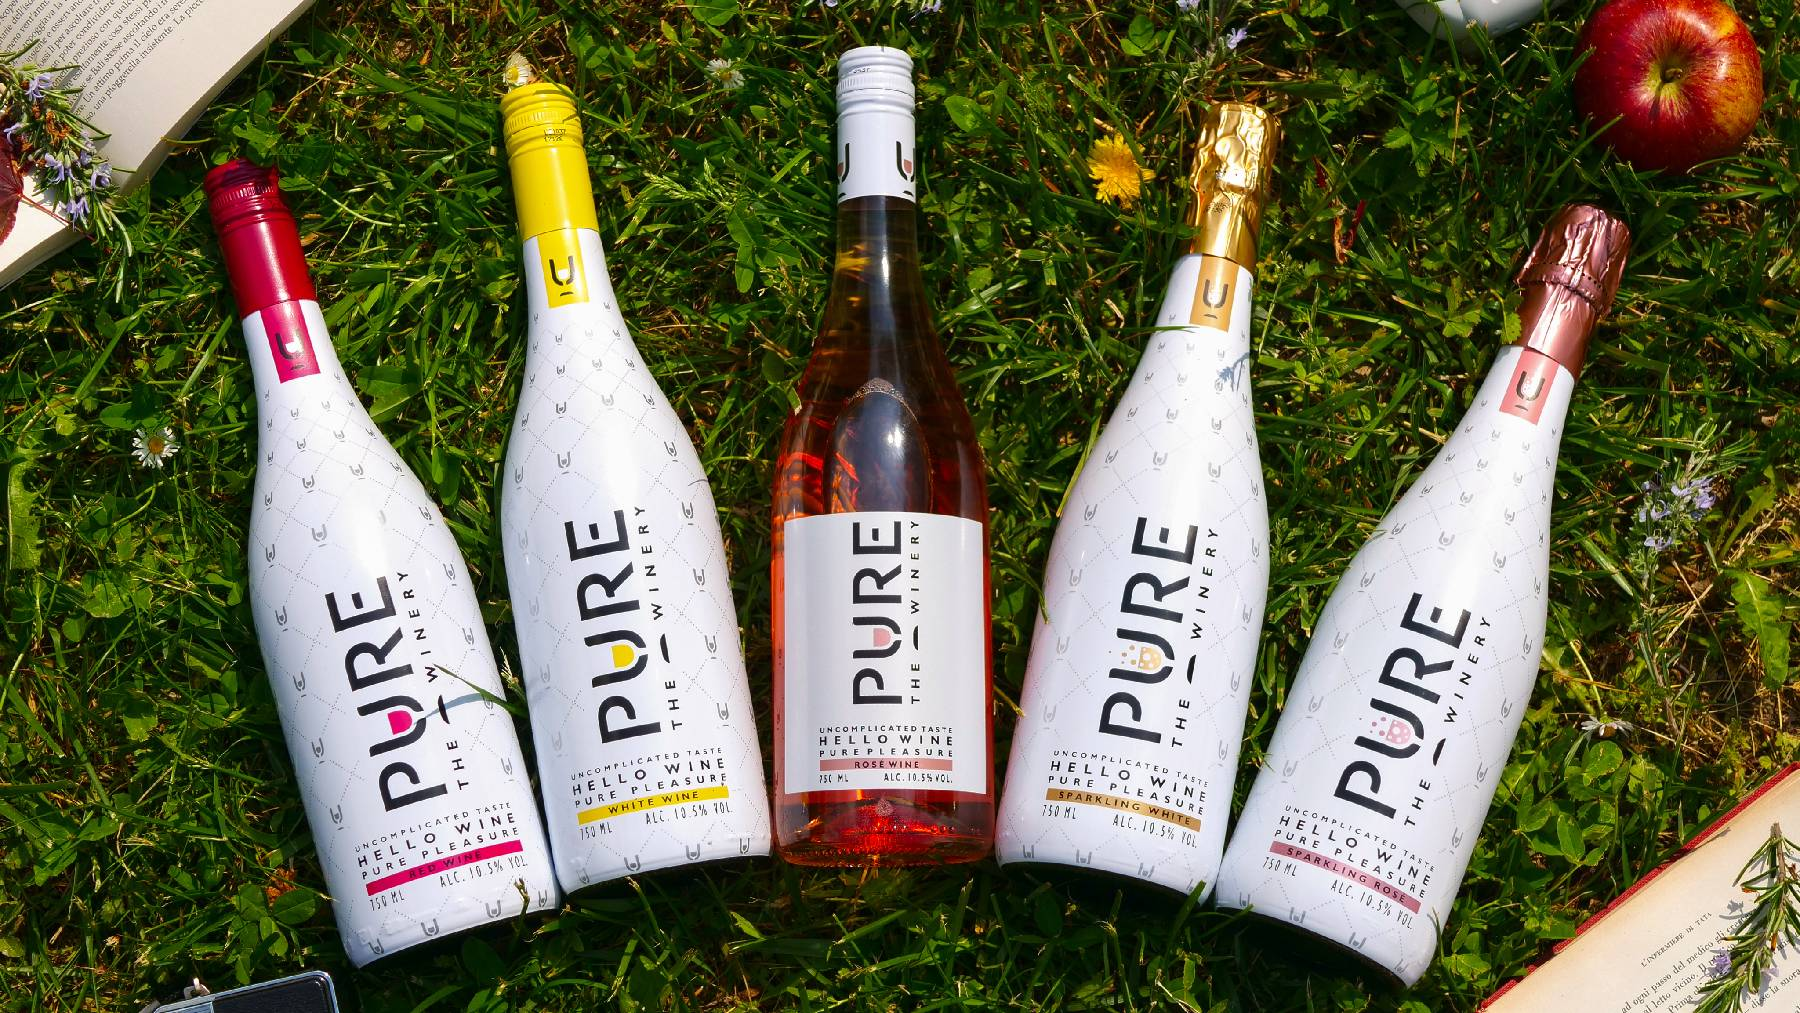 Pure The Winery.